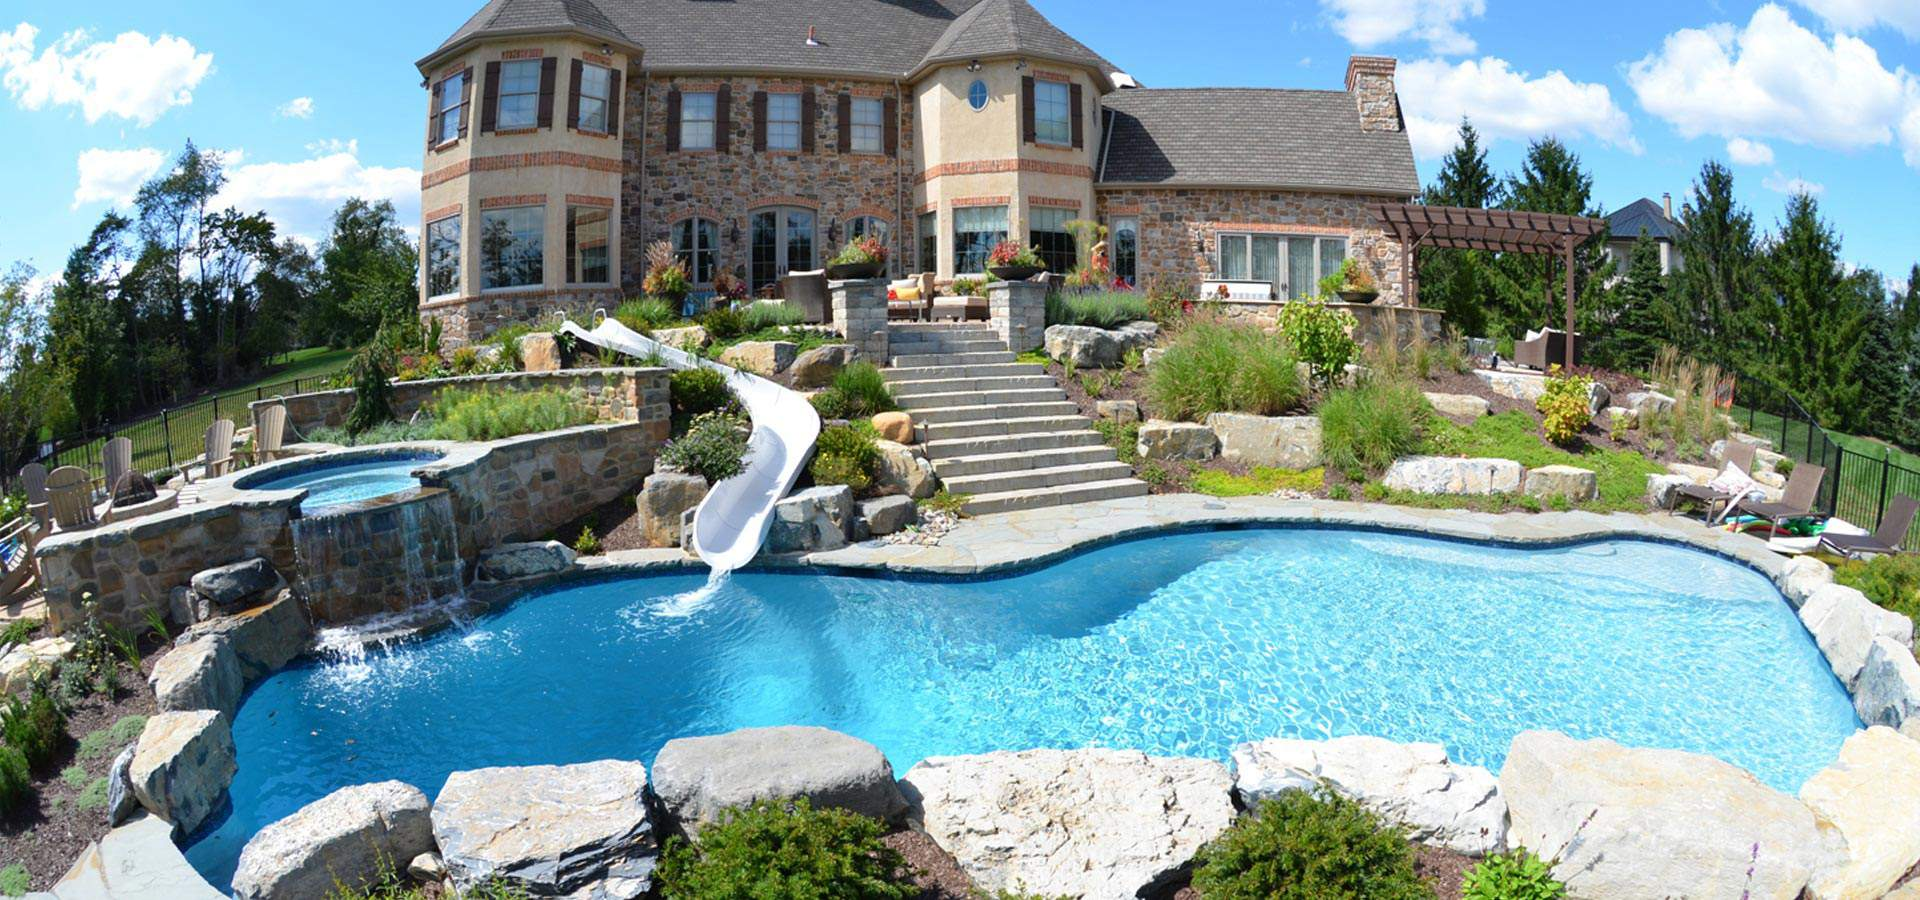 1 Pool Builder in Lehigh Valley PA | Best Inground Pools